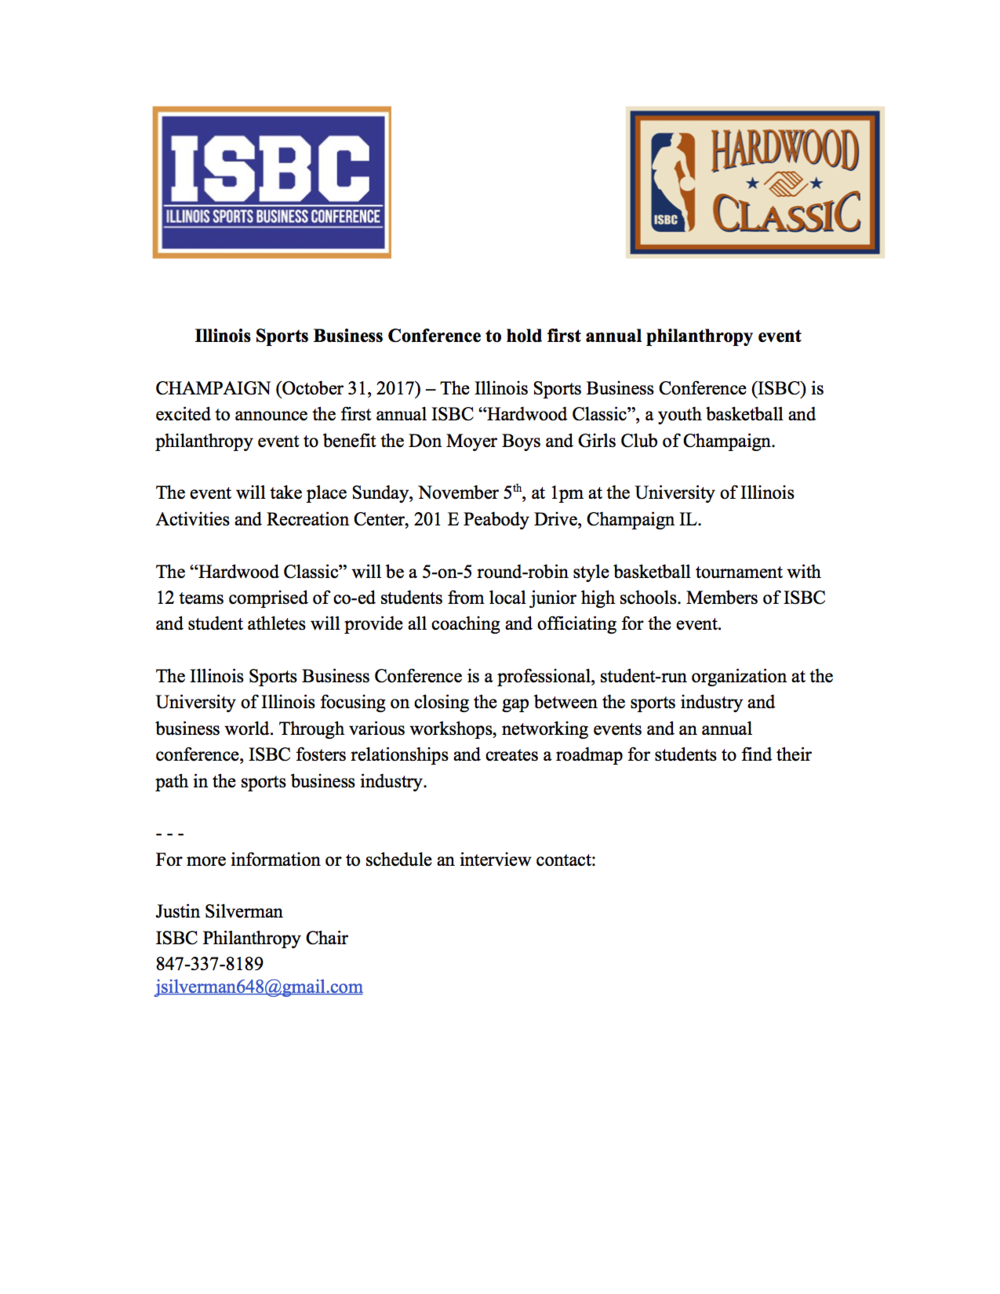 ISBC Press Release.png